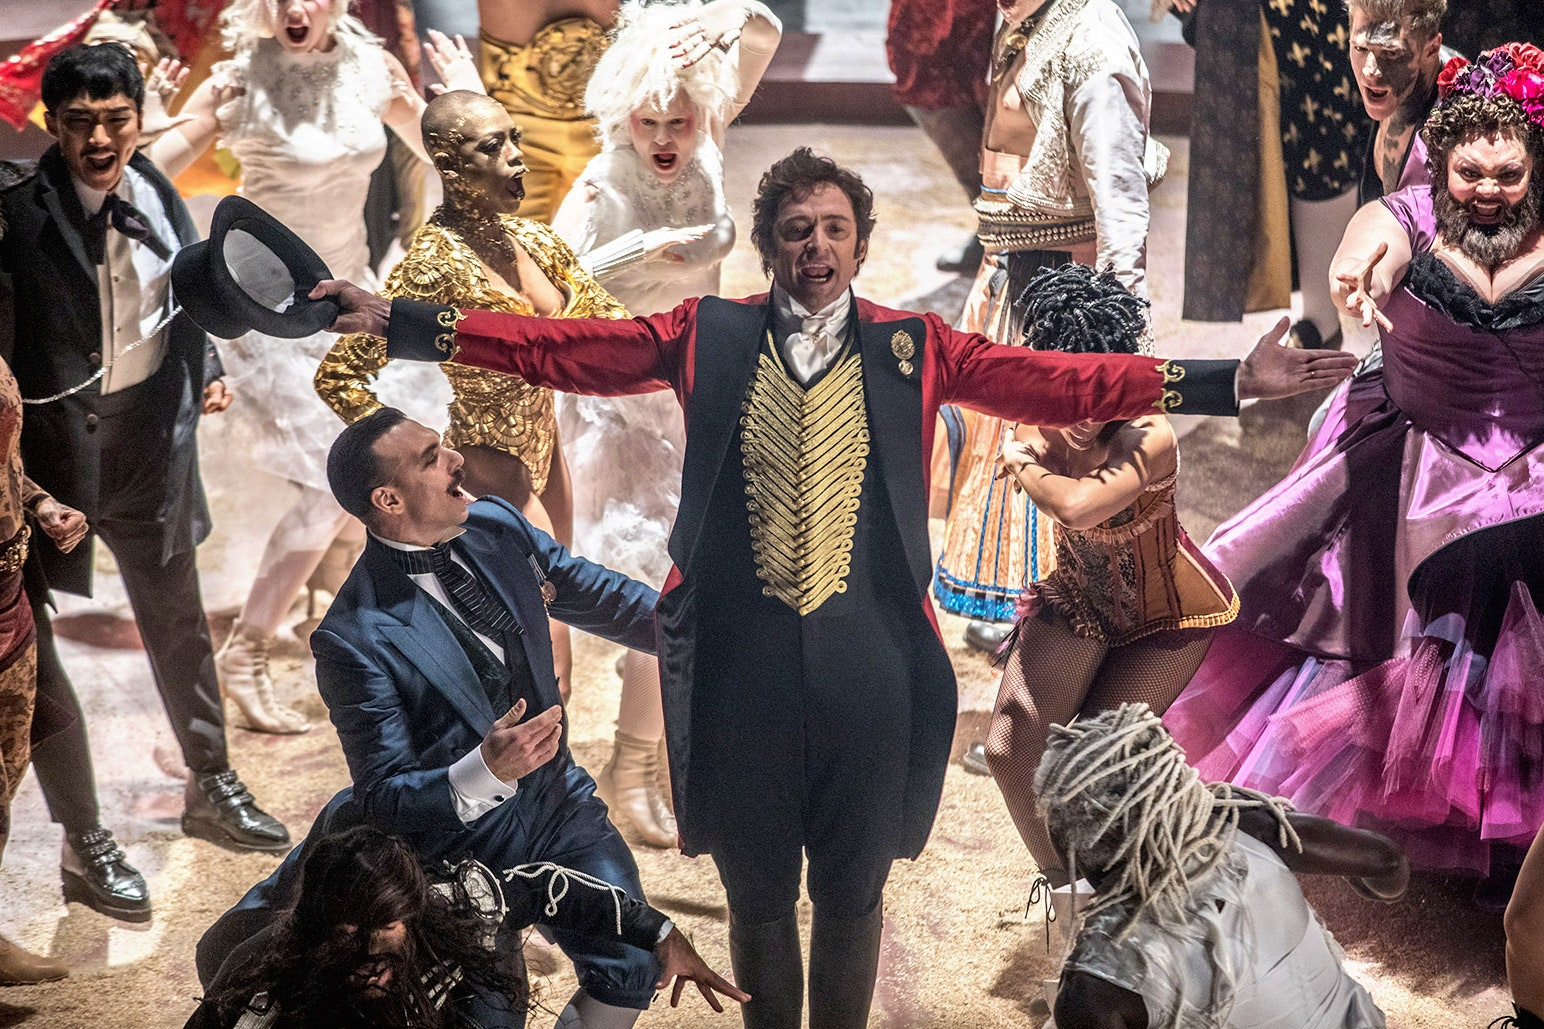 image from the movie The Greatest Showman, the main character with his arms open wide at the end of the show with characters around him.